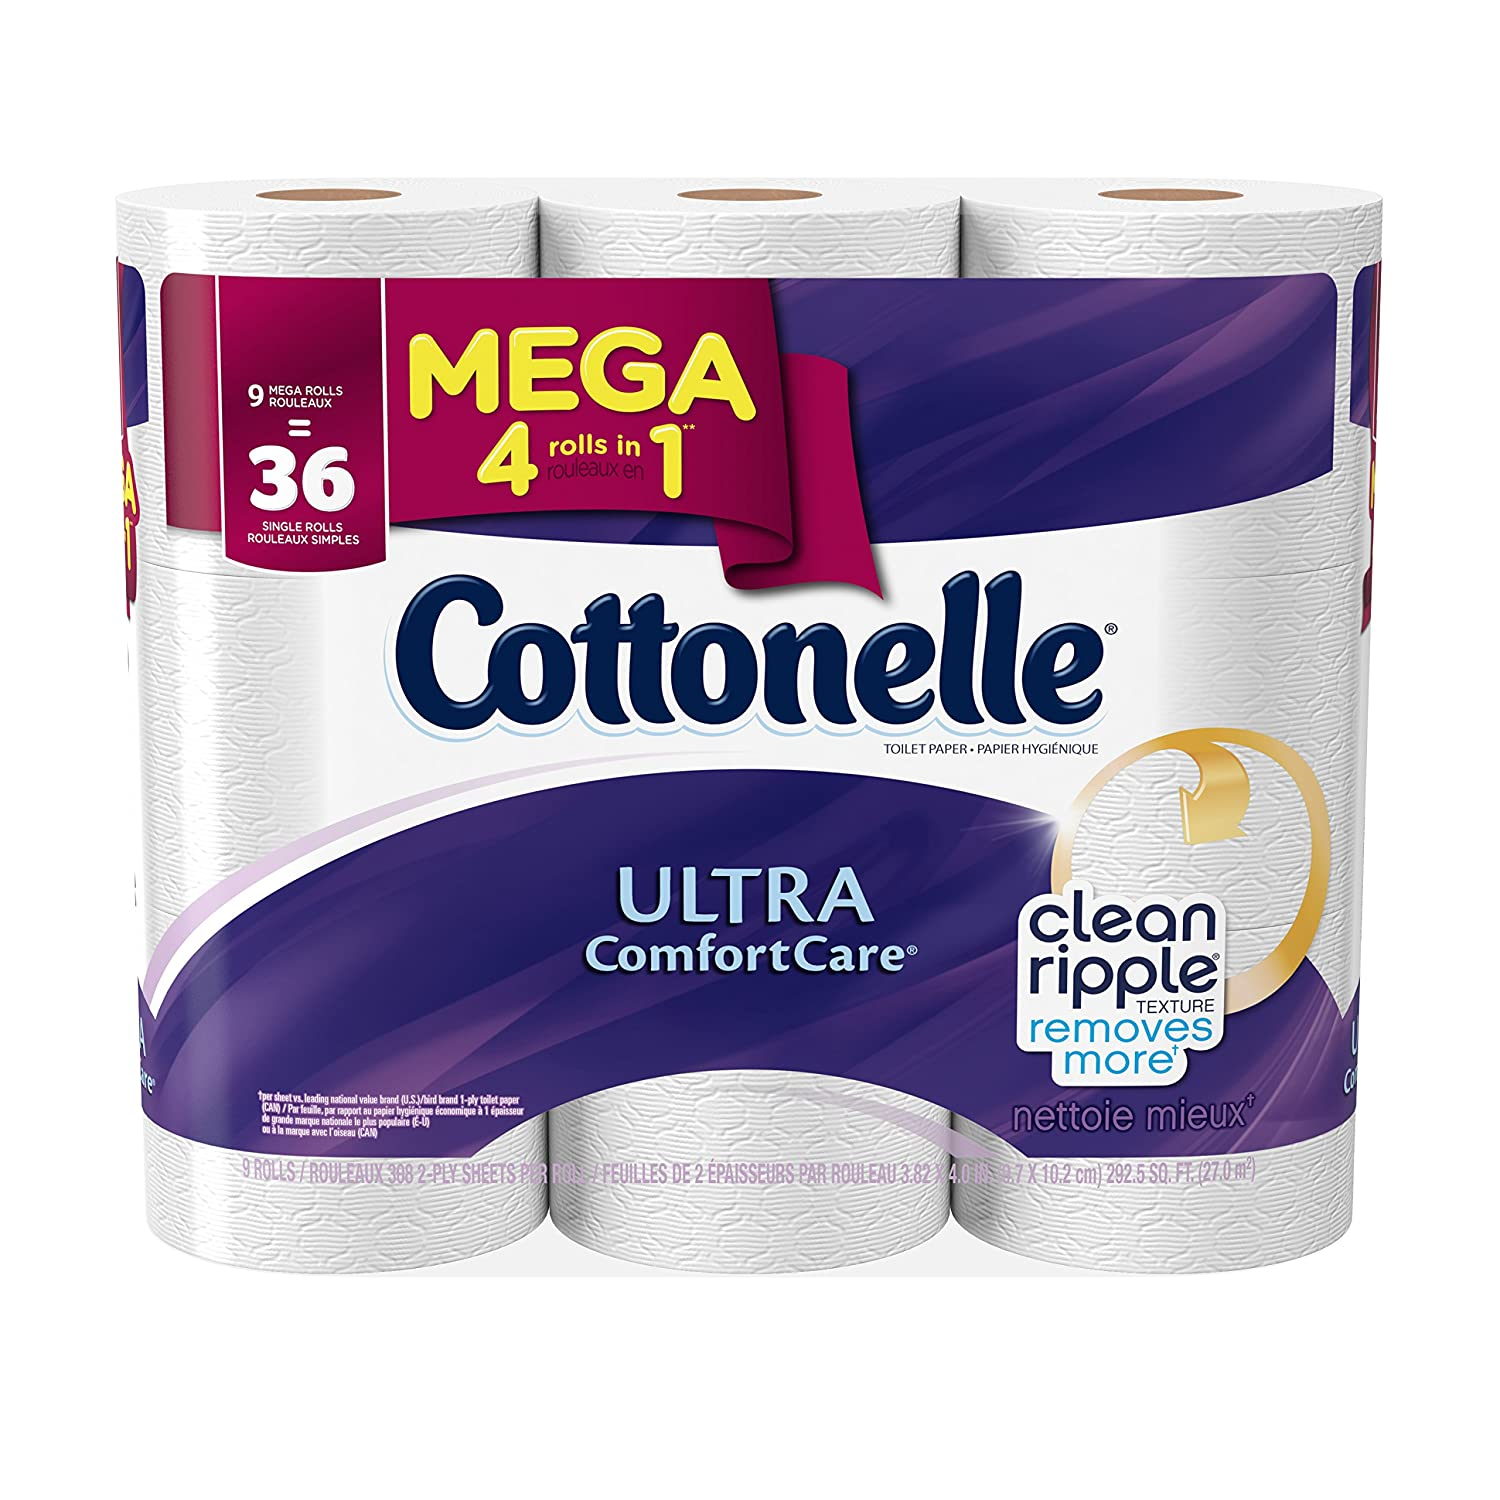 Cottonelle Ultra Comfort Care Mega Roll Toilet Paper, 9 Count